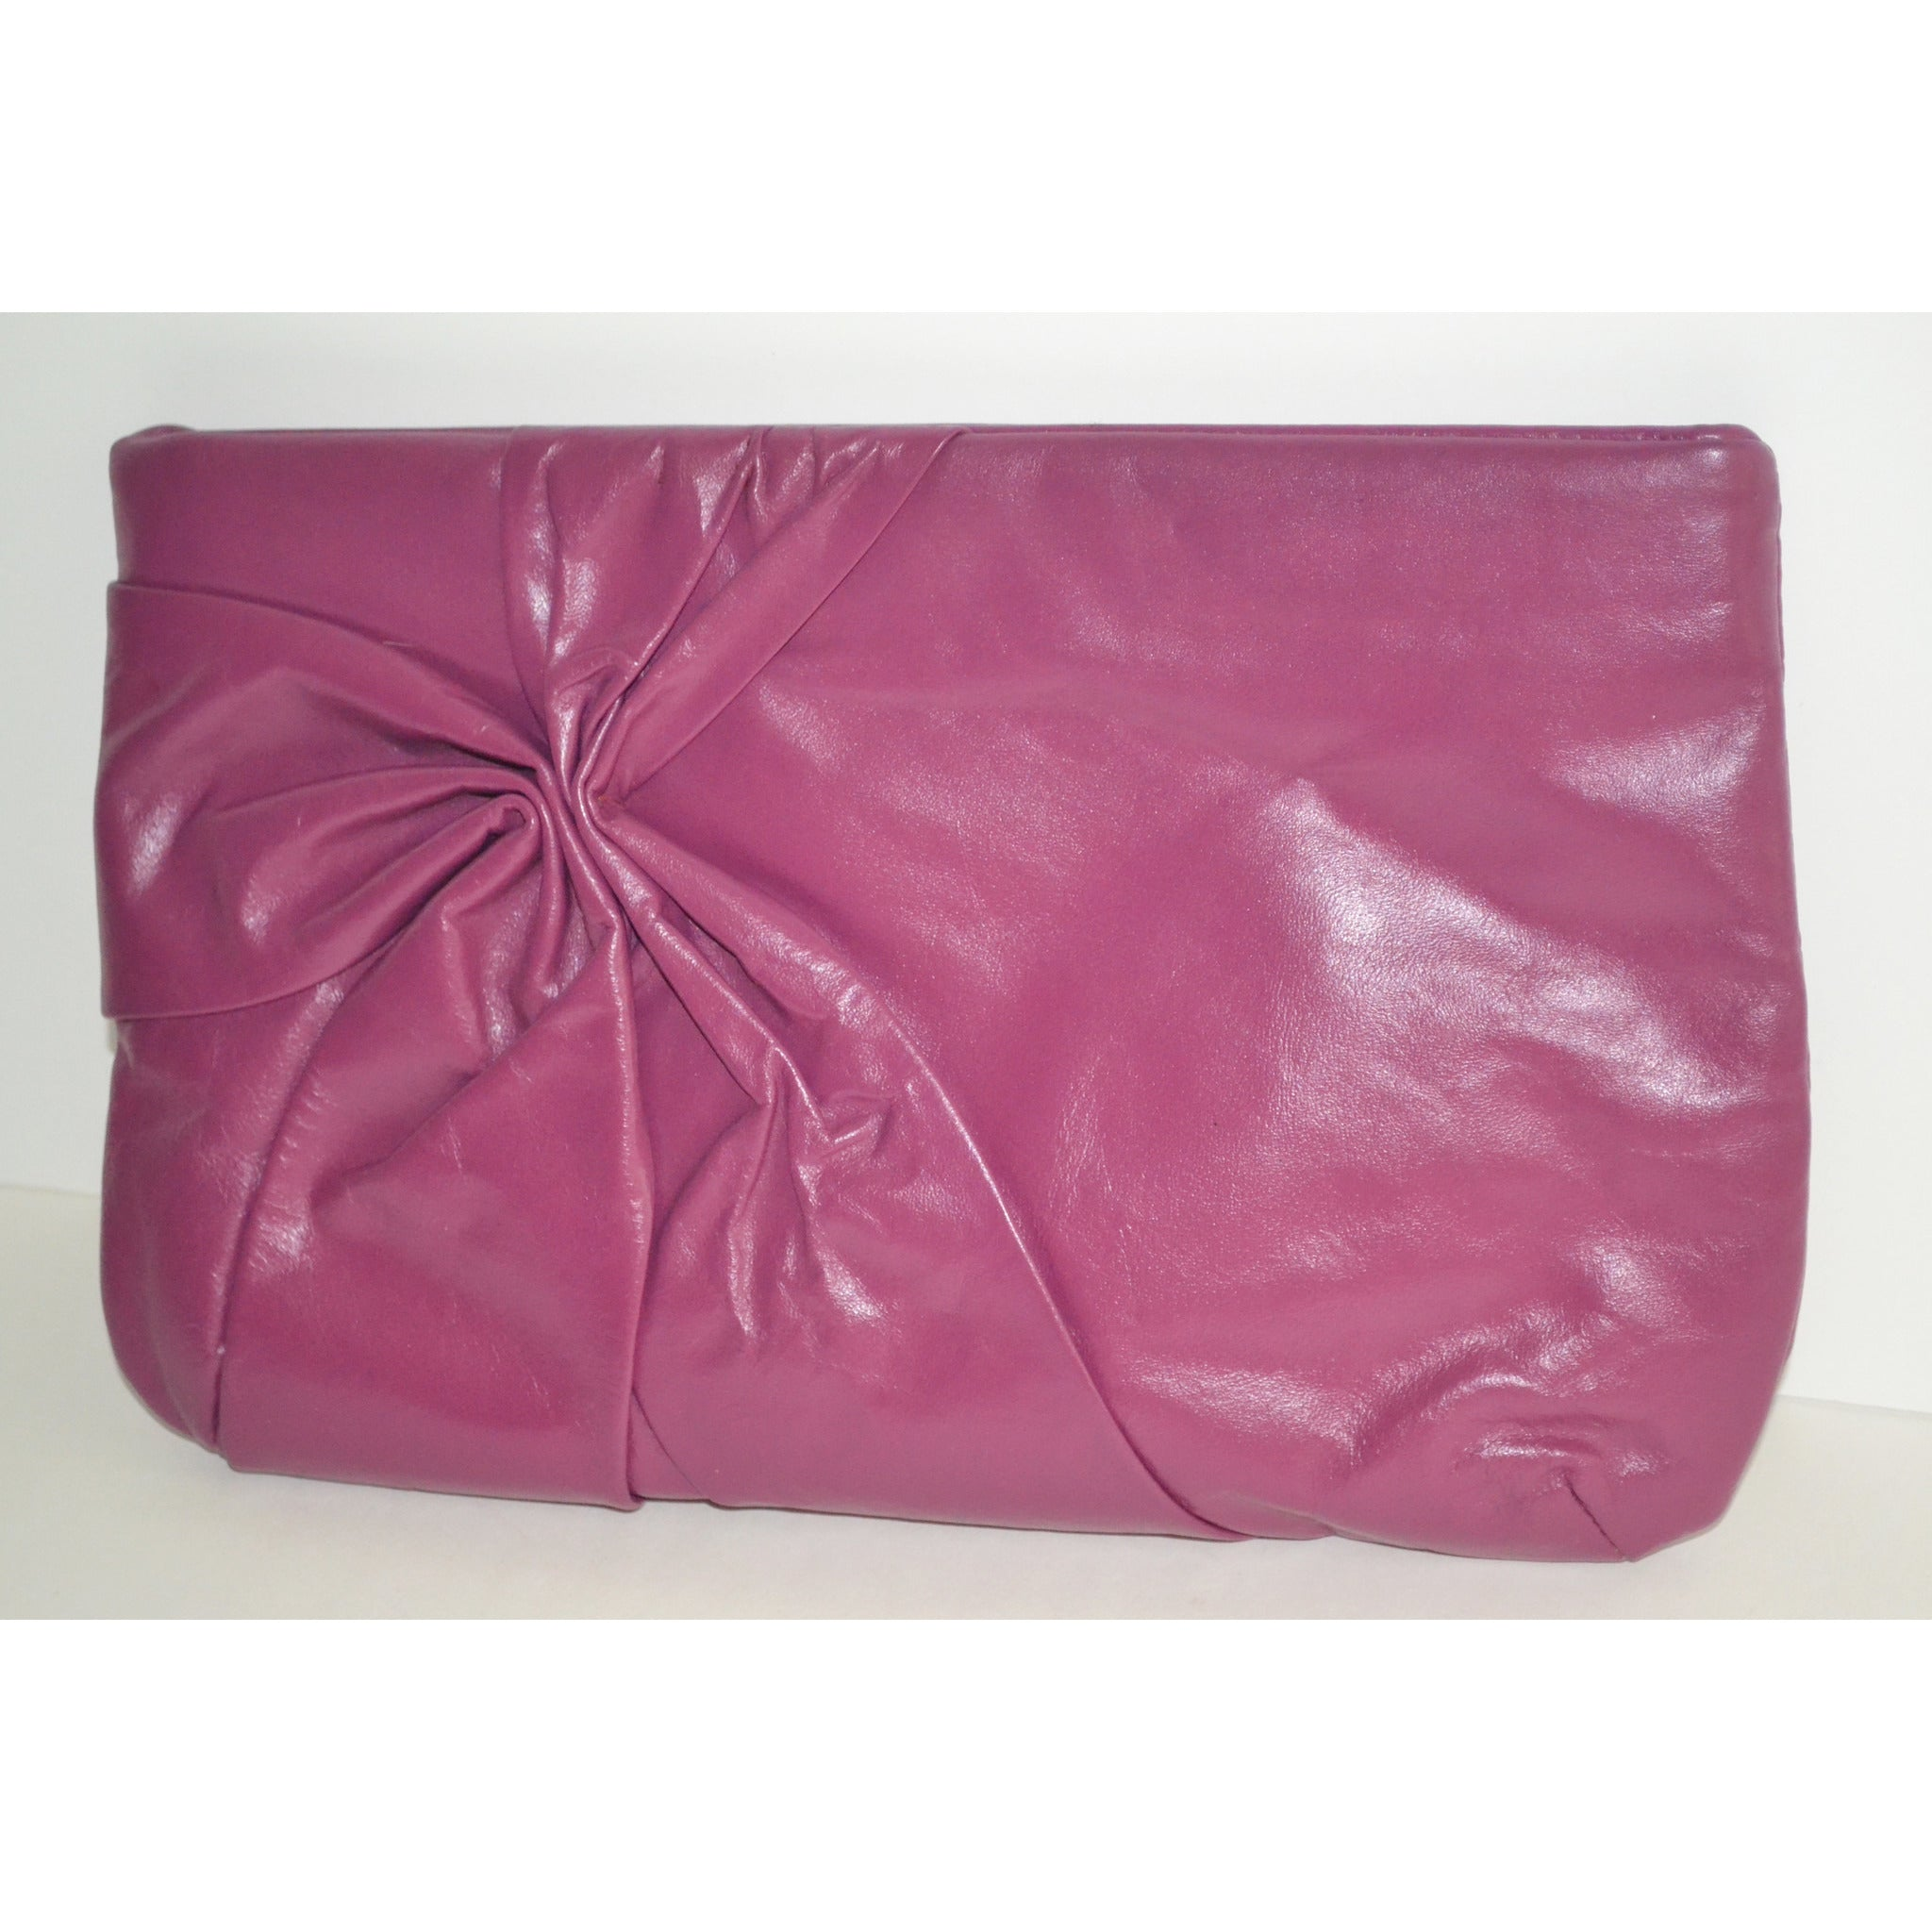 Vintage Magenta Leather Clutch Purse